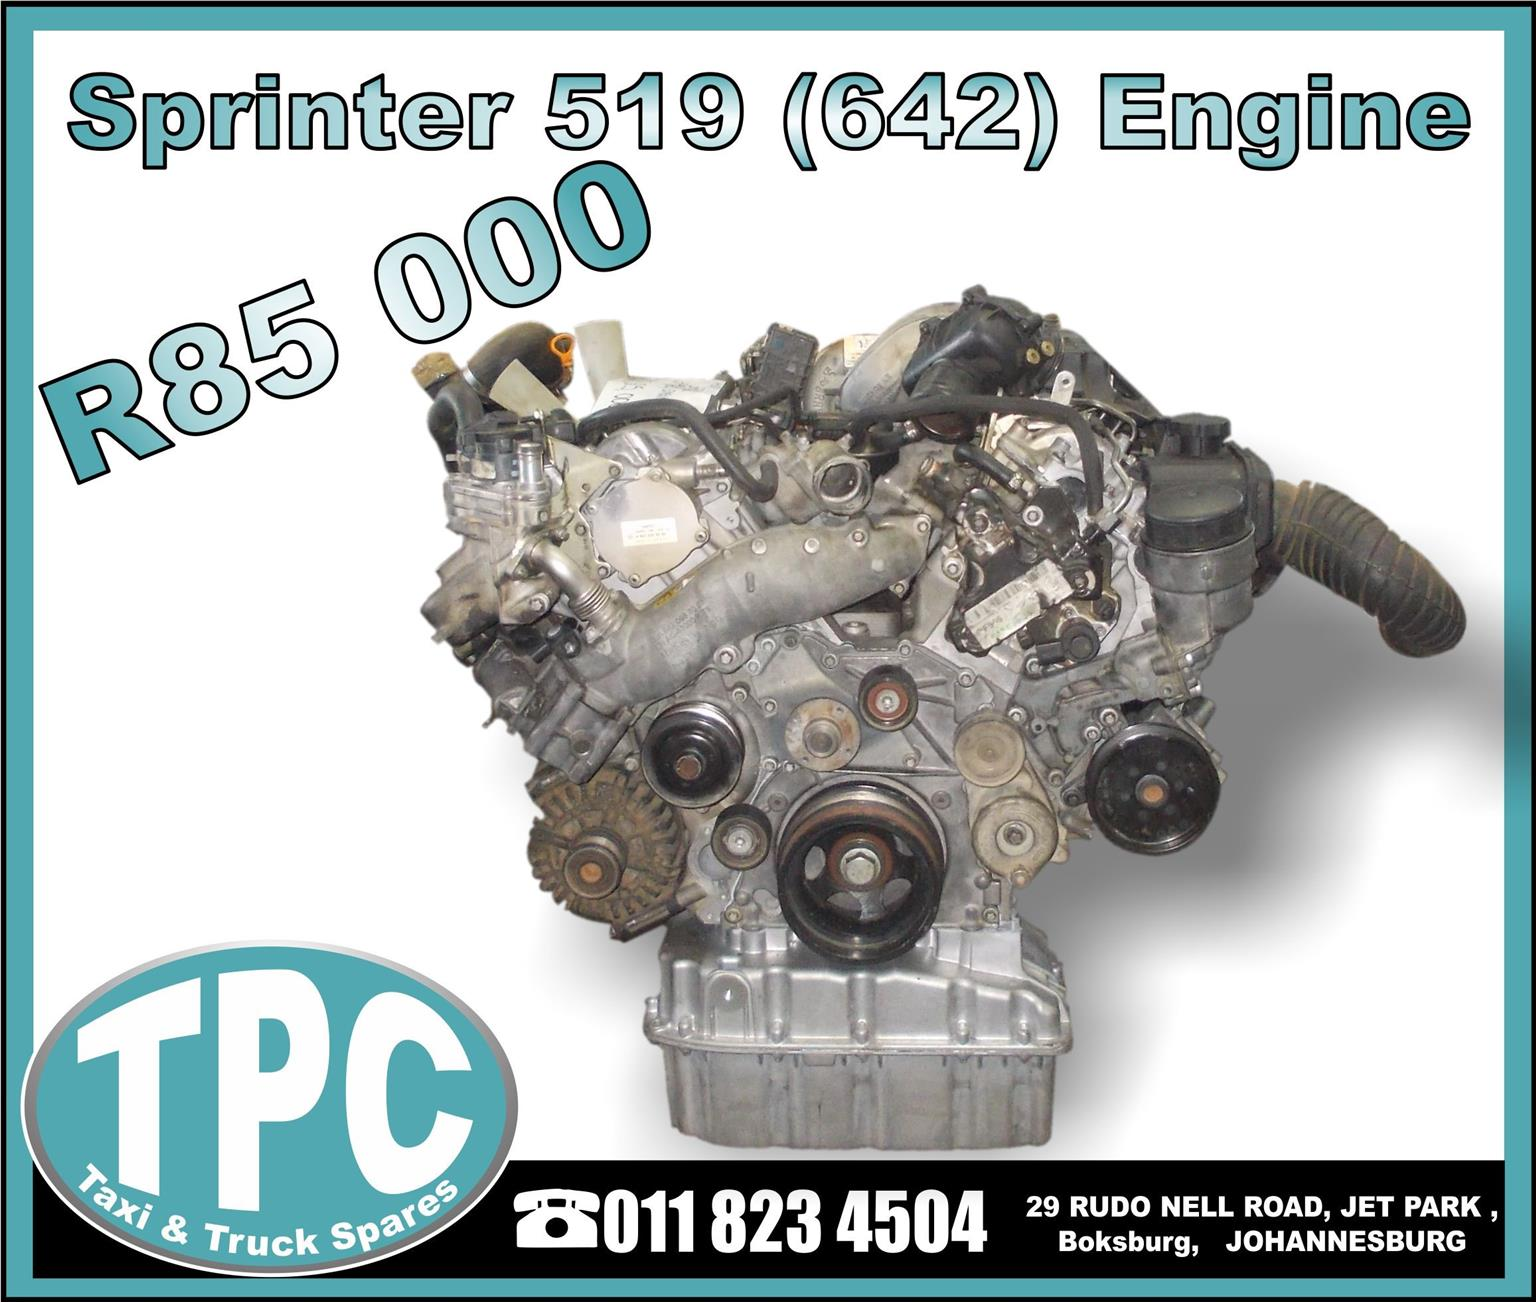 Sprinter 519 (642) Engine - Used Replacement Parts.